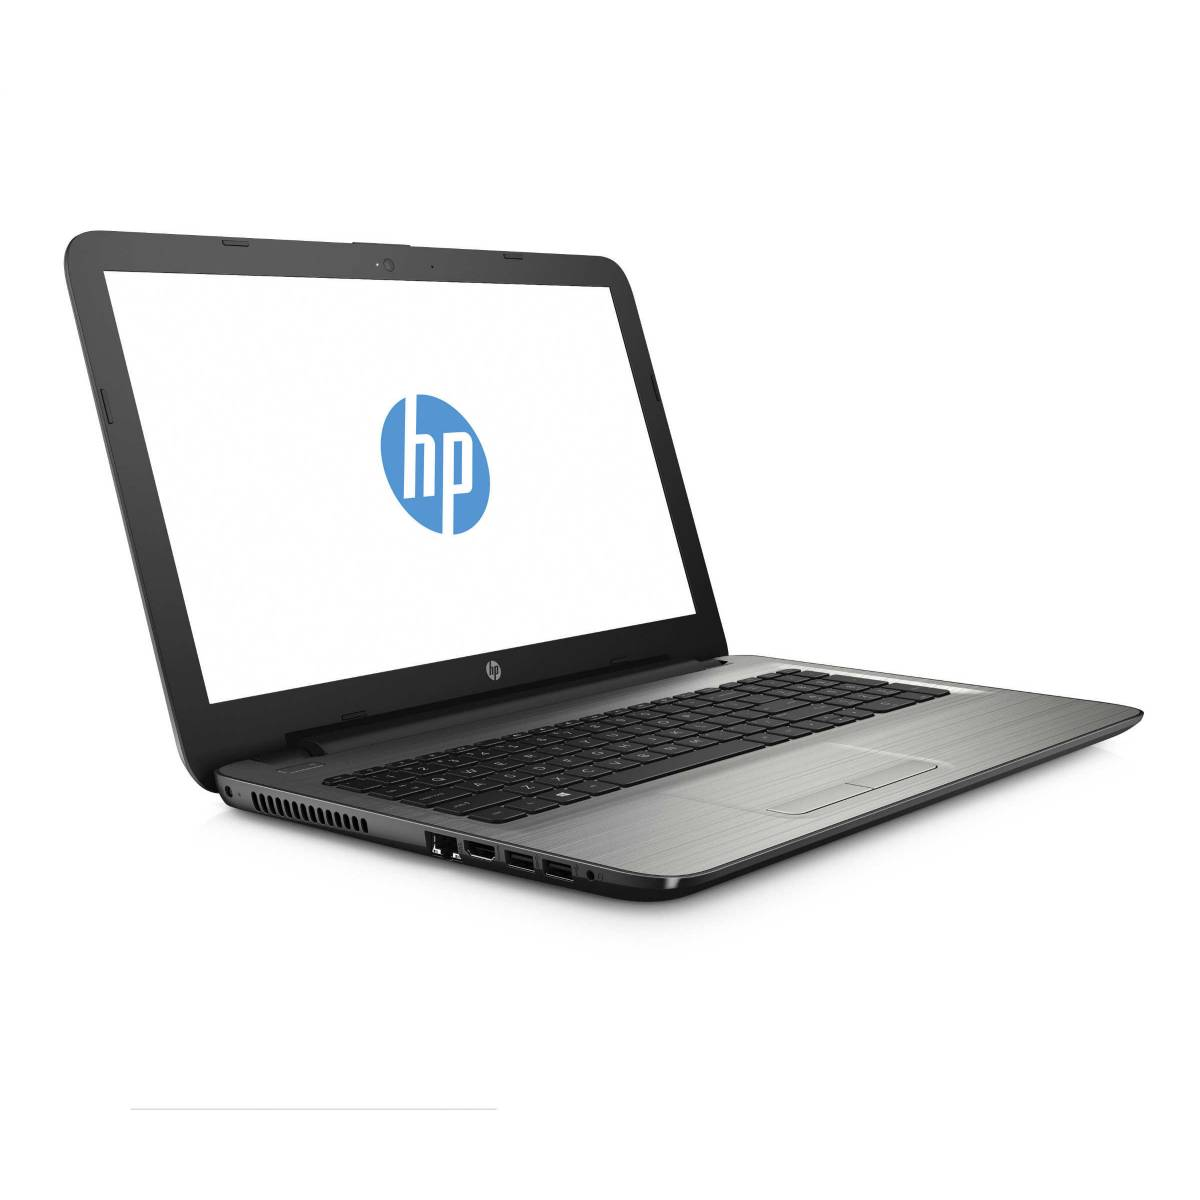 hp y0w61ea 15-ba028nt amd a6-7310 2ghz-4gb-500gb-15.6 2gb windows 10 261906754